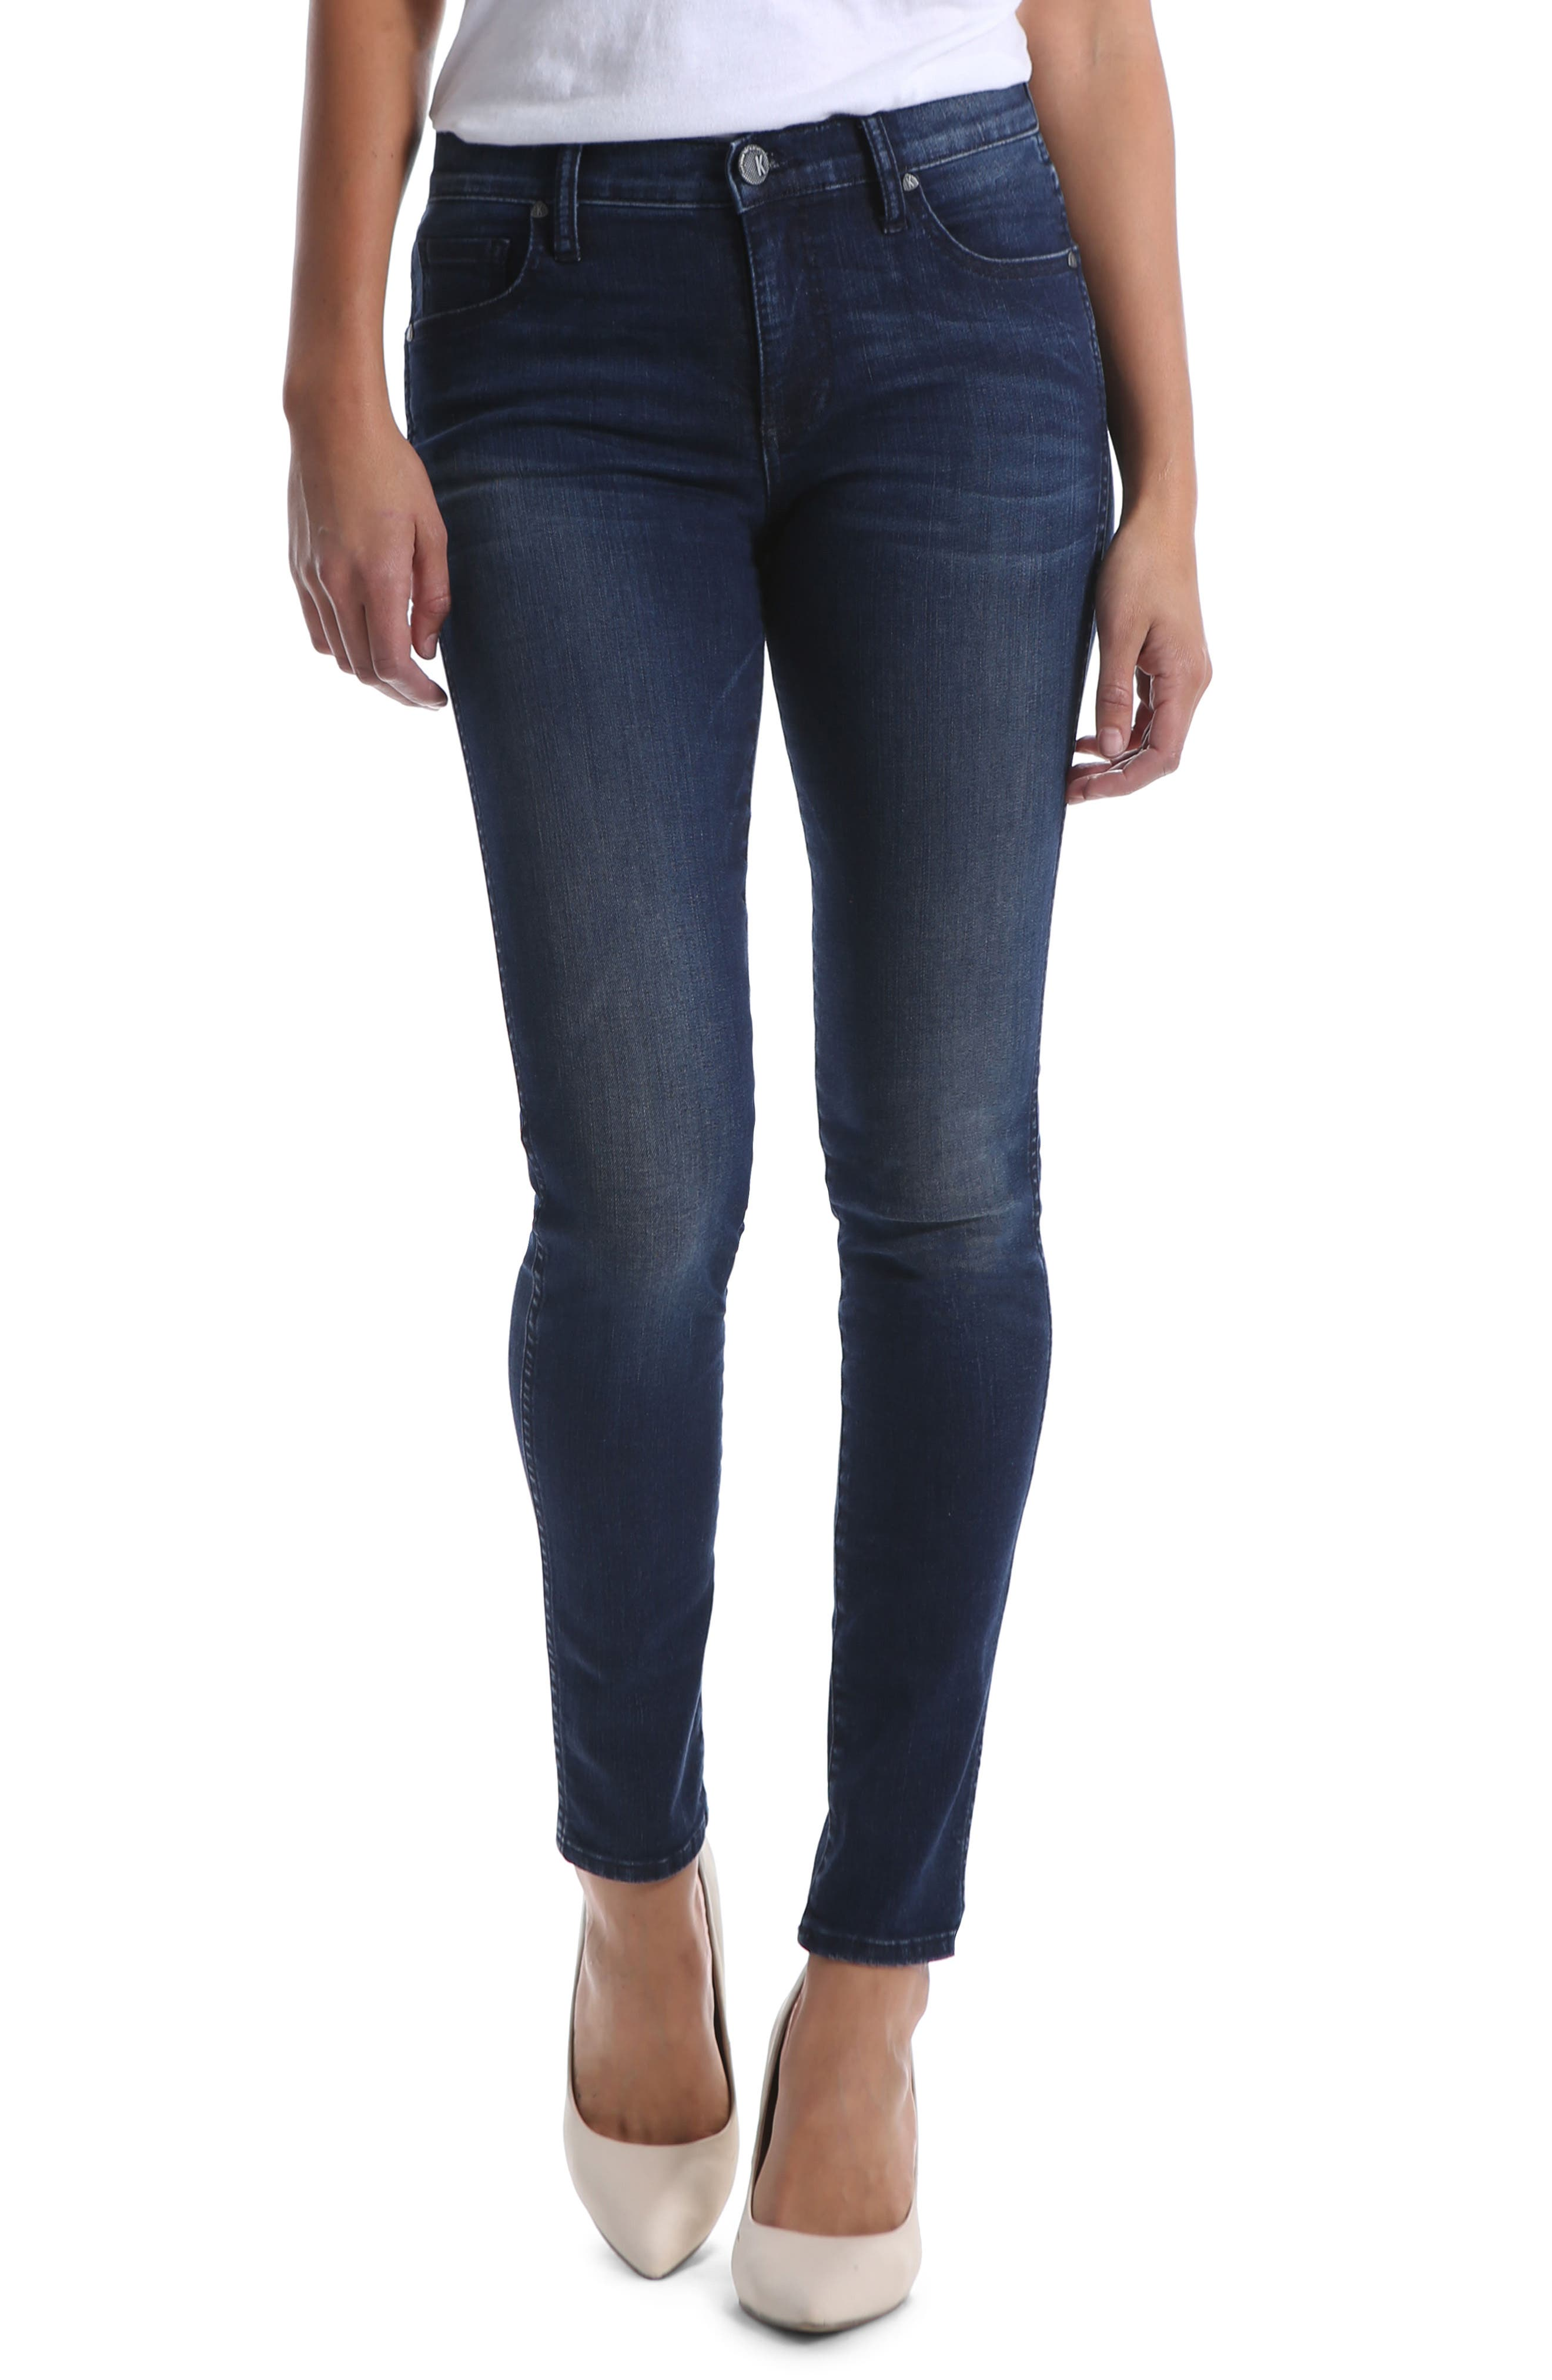 Kut From The Kloth Diana Fab Ab Fit Solution Skinny Jeans, Blue